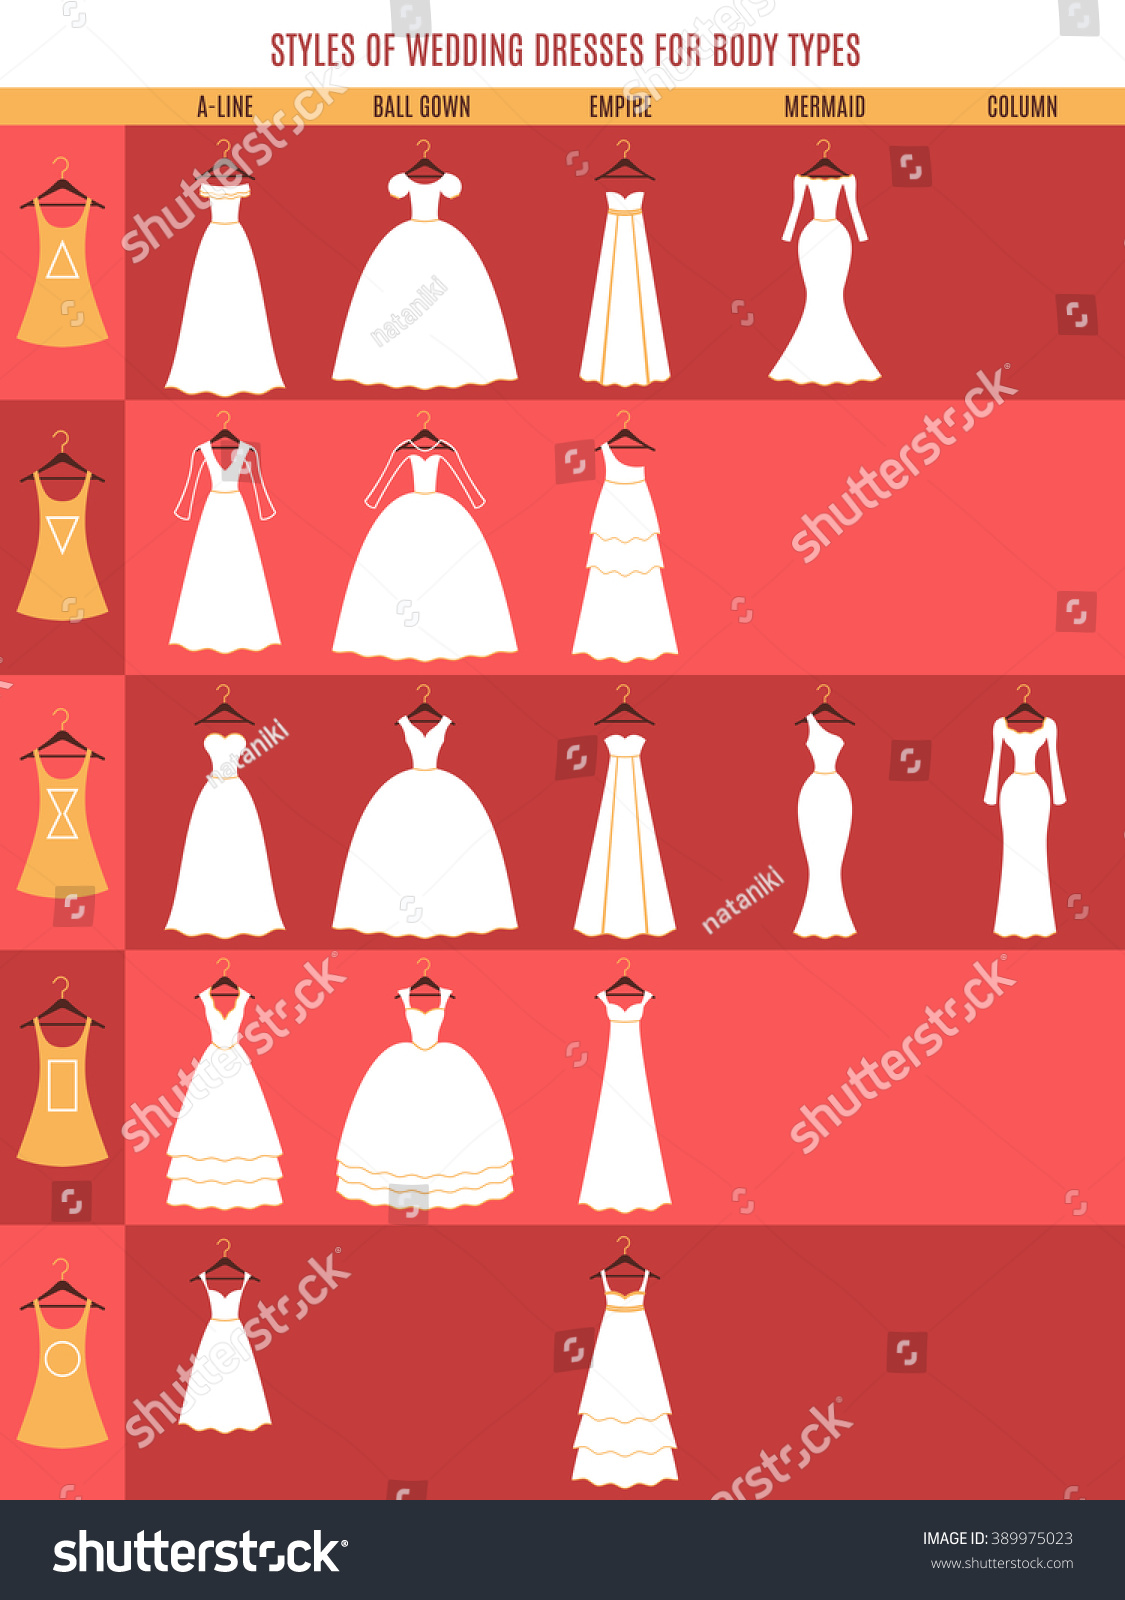 Styles Of Wedding Dresses A Line Ball Gown Empire Mermaid